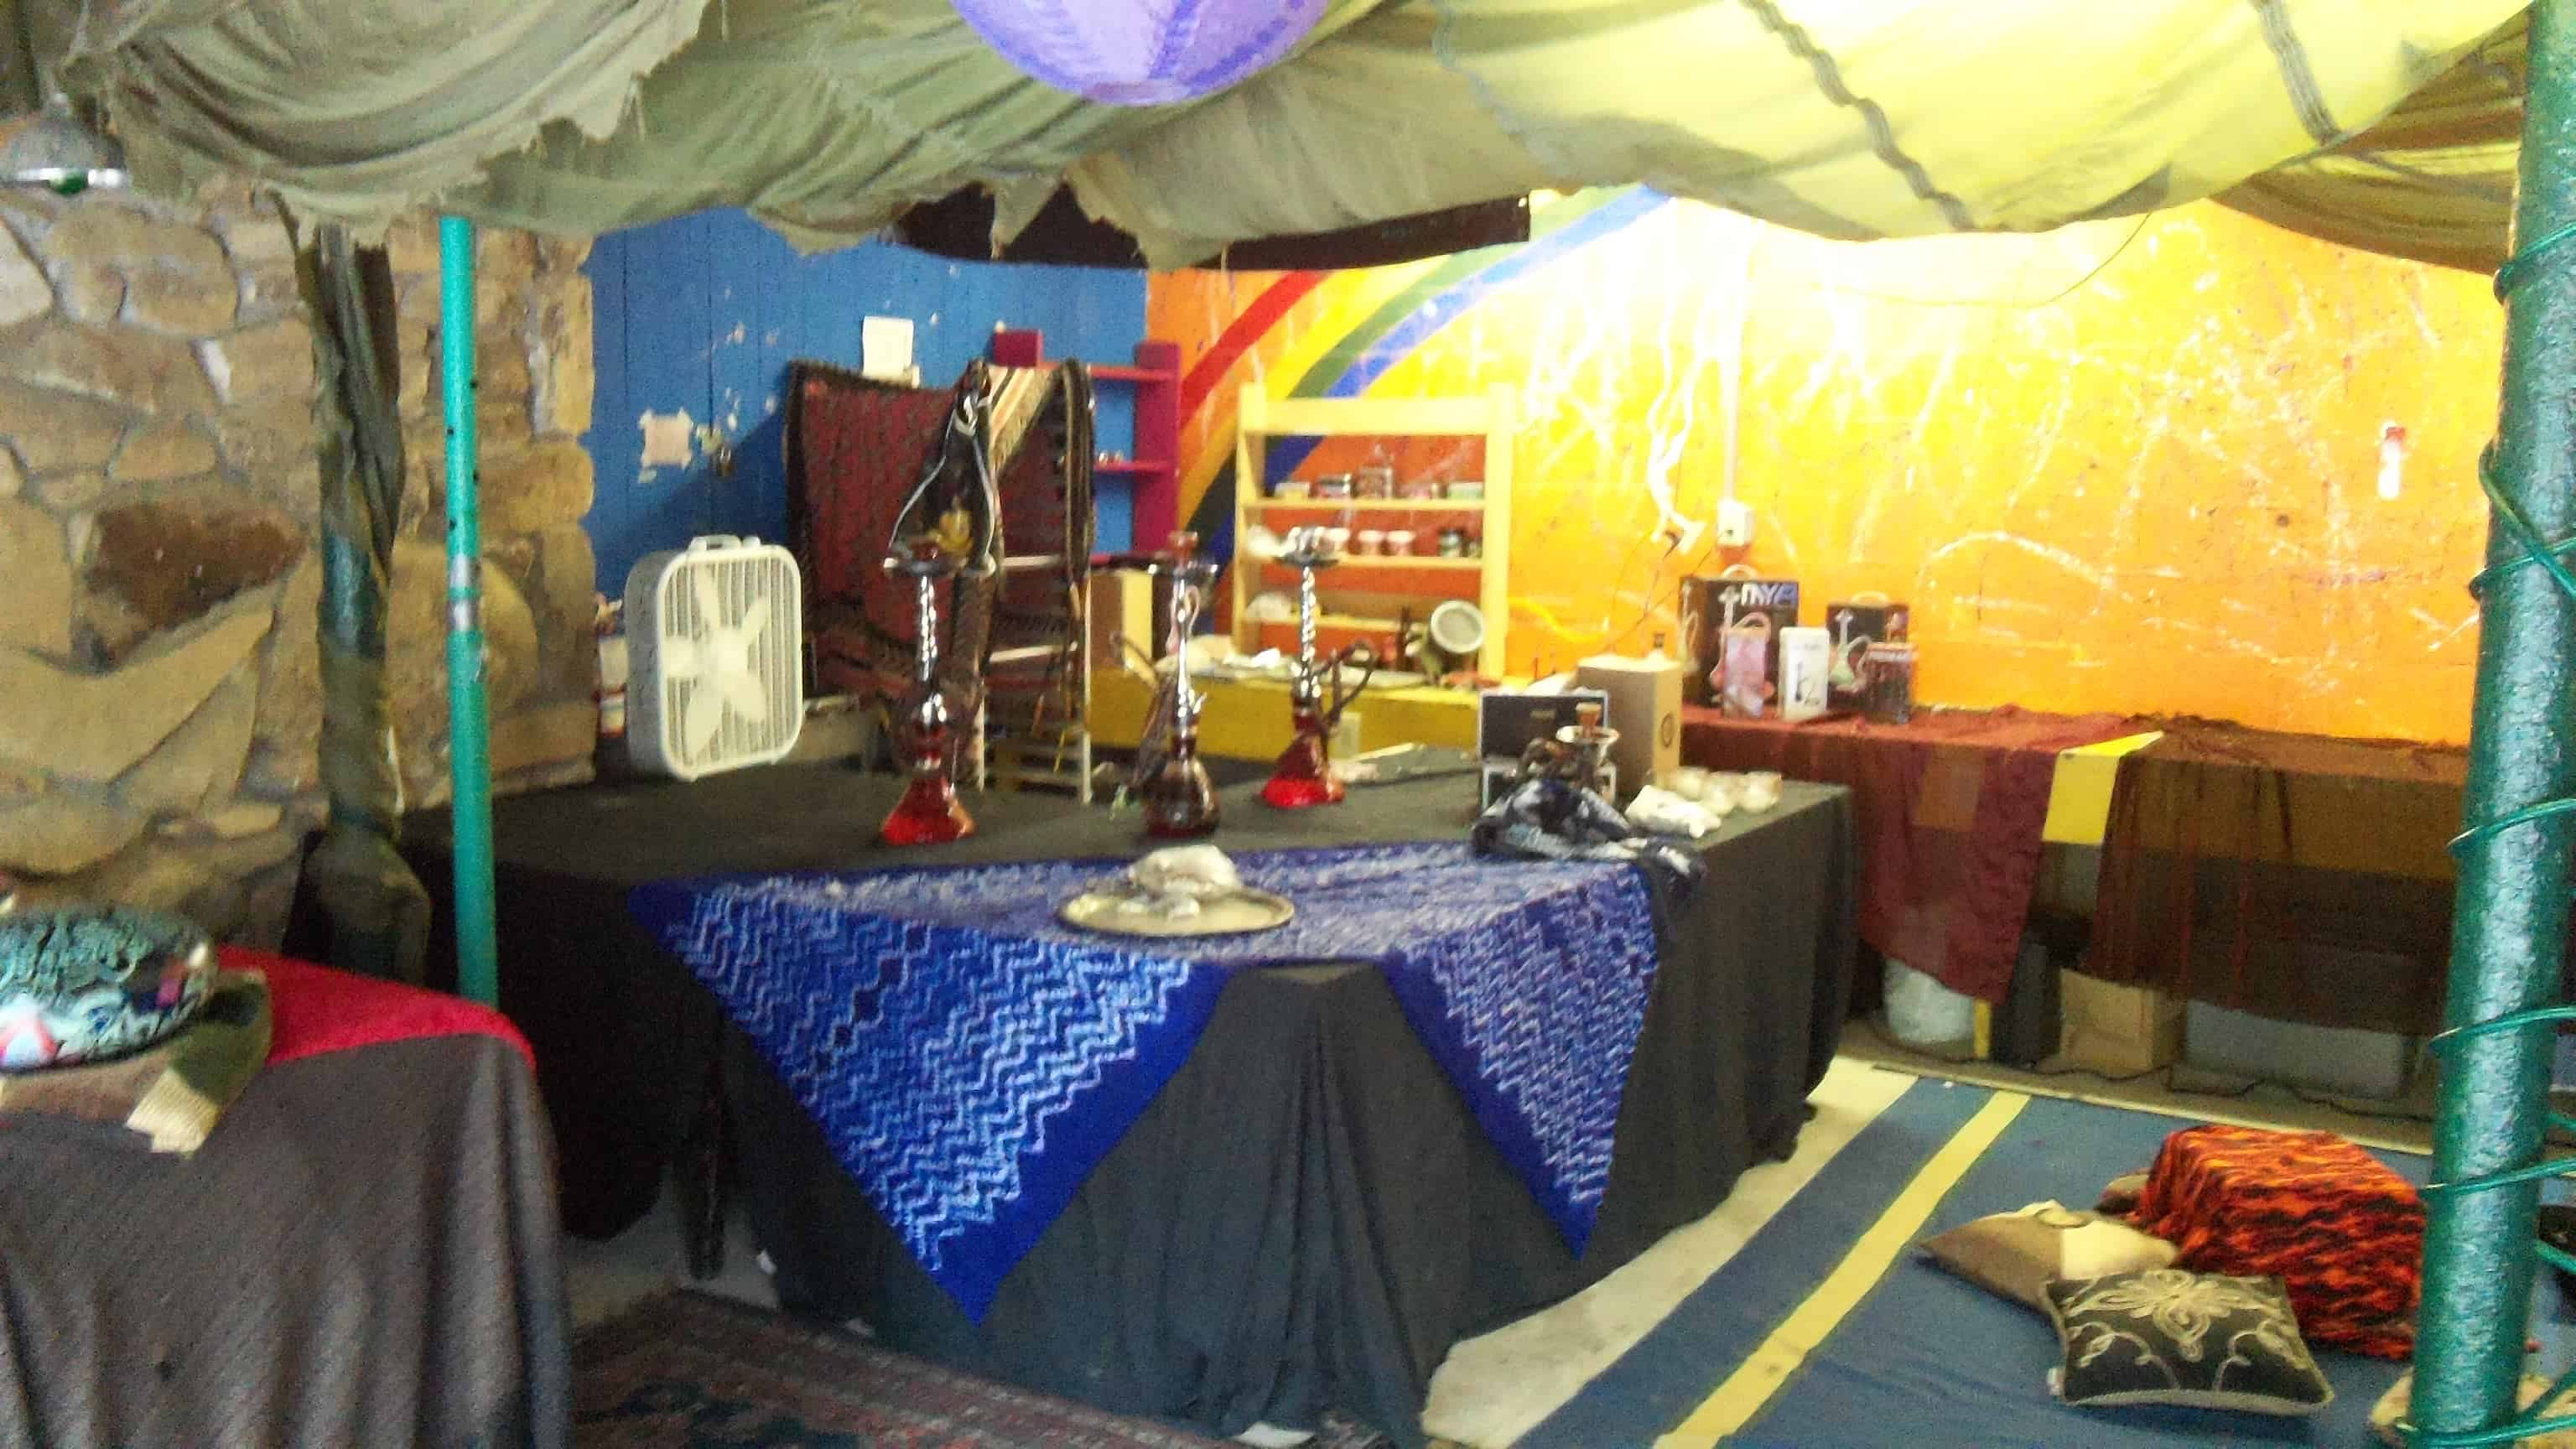 Leave a comment & Mobile Hookah Lounges at your next party - Juggling Gypsy Cafe ...